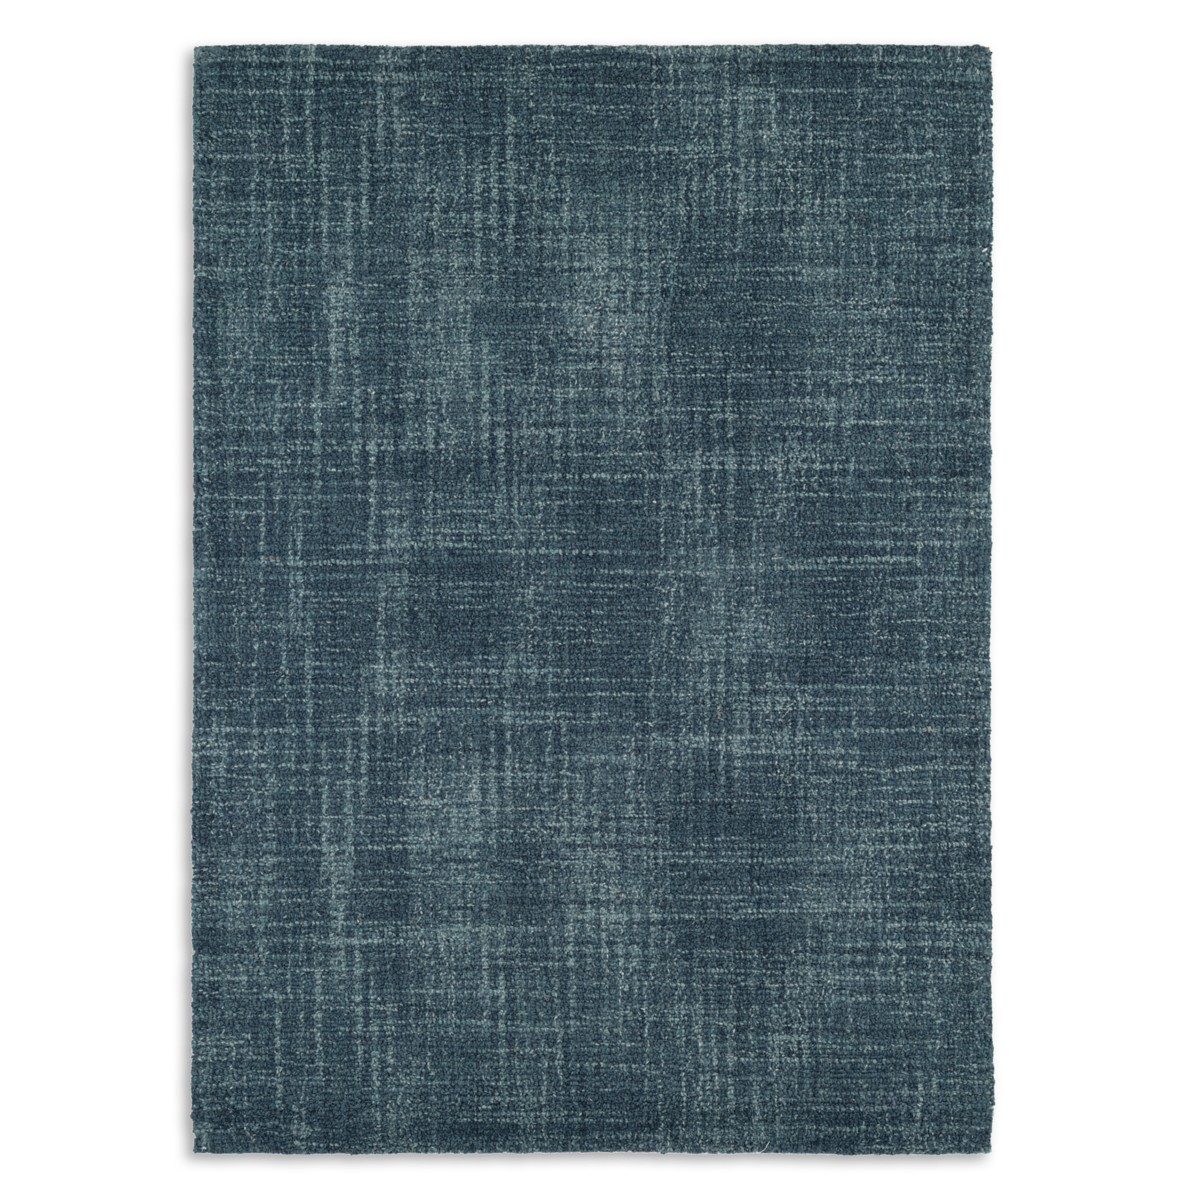 Crosshatch Wool Micro Hooked Rug - Denim